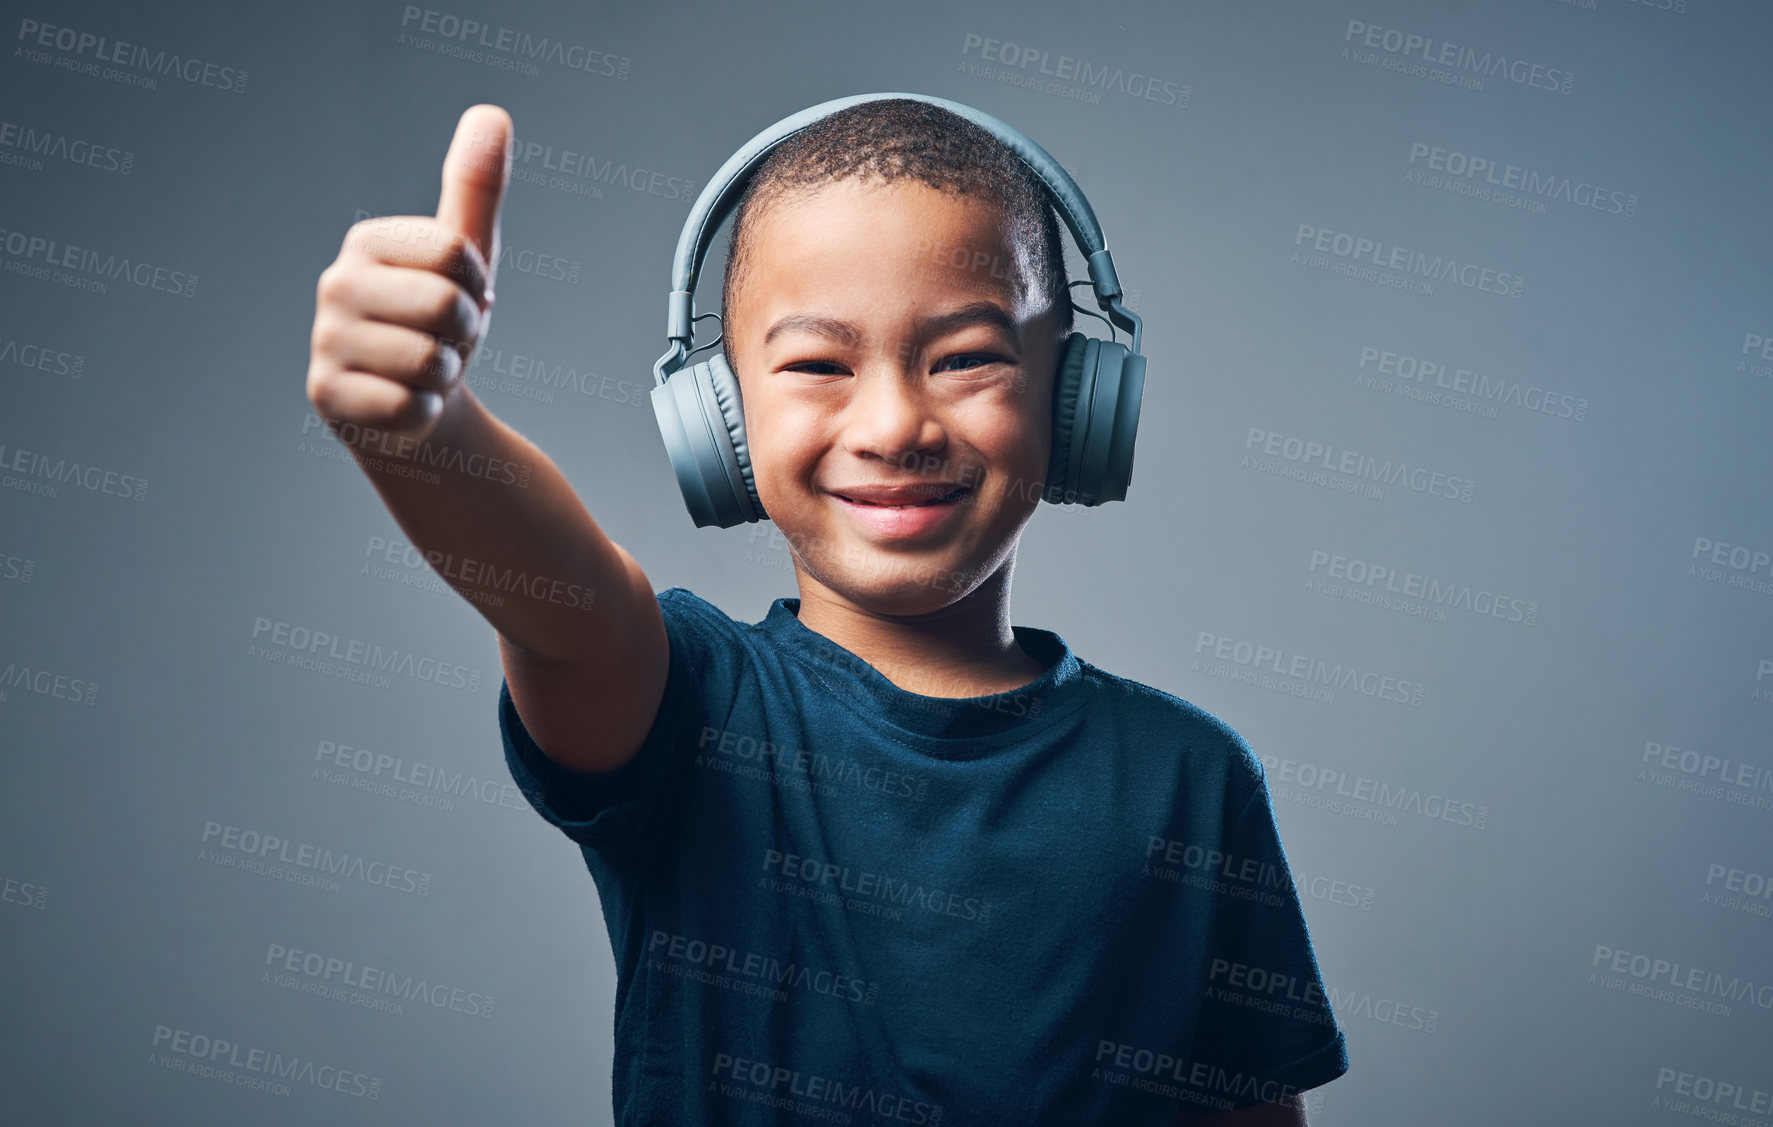 Buy stock photo Studio shot of a cute little boy using headphones and showing thumbs up against a grey background